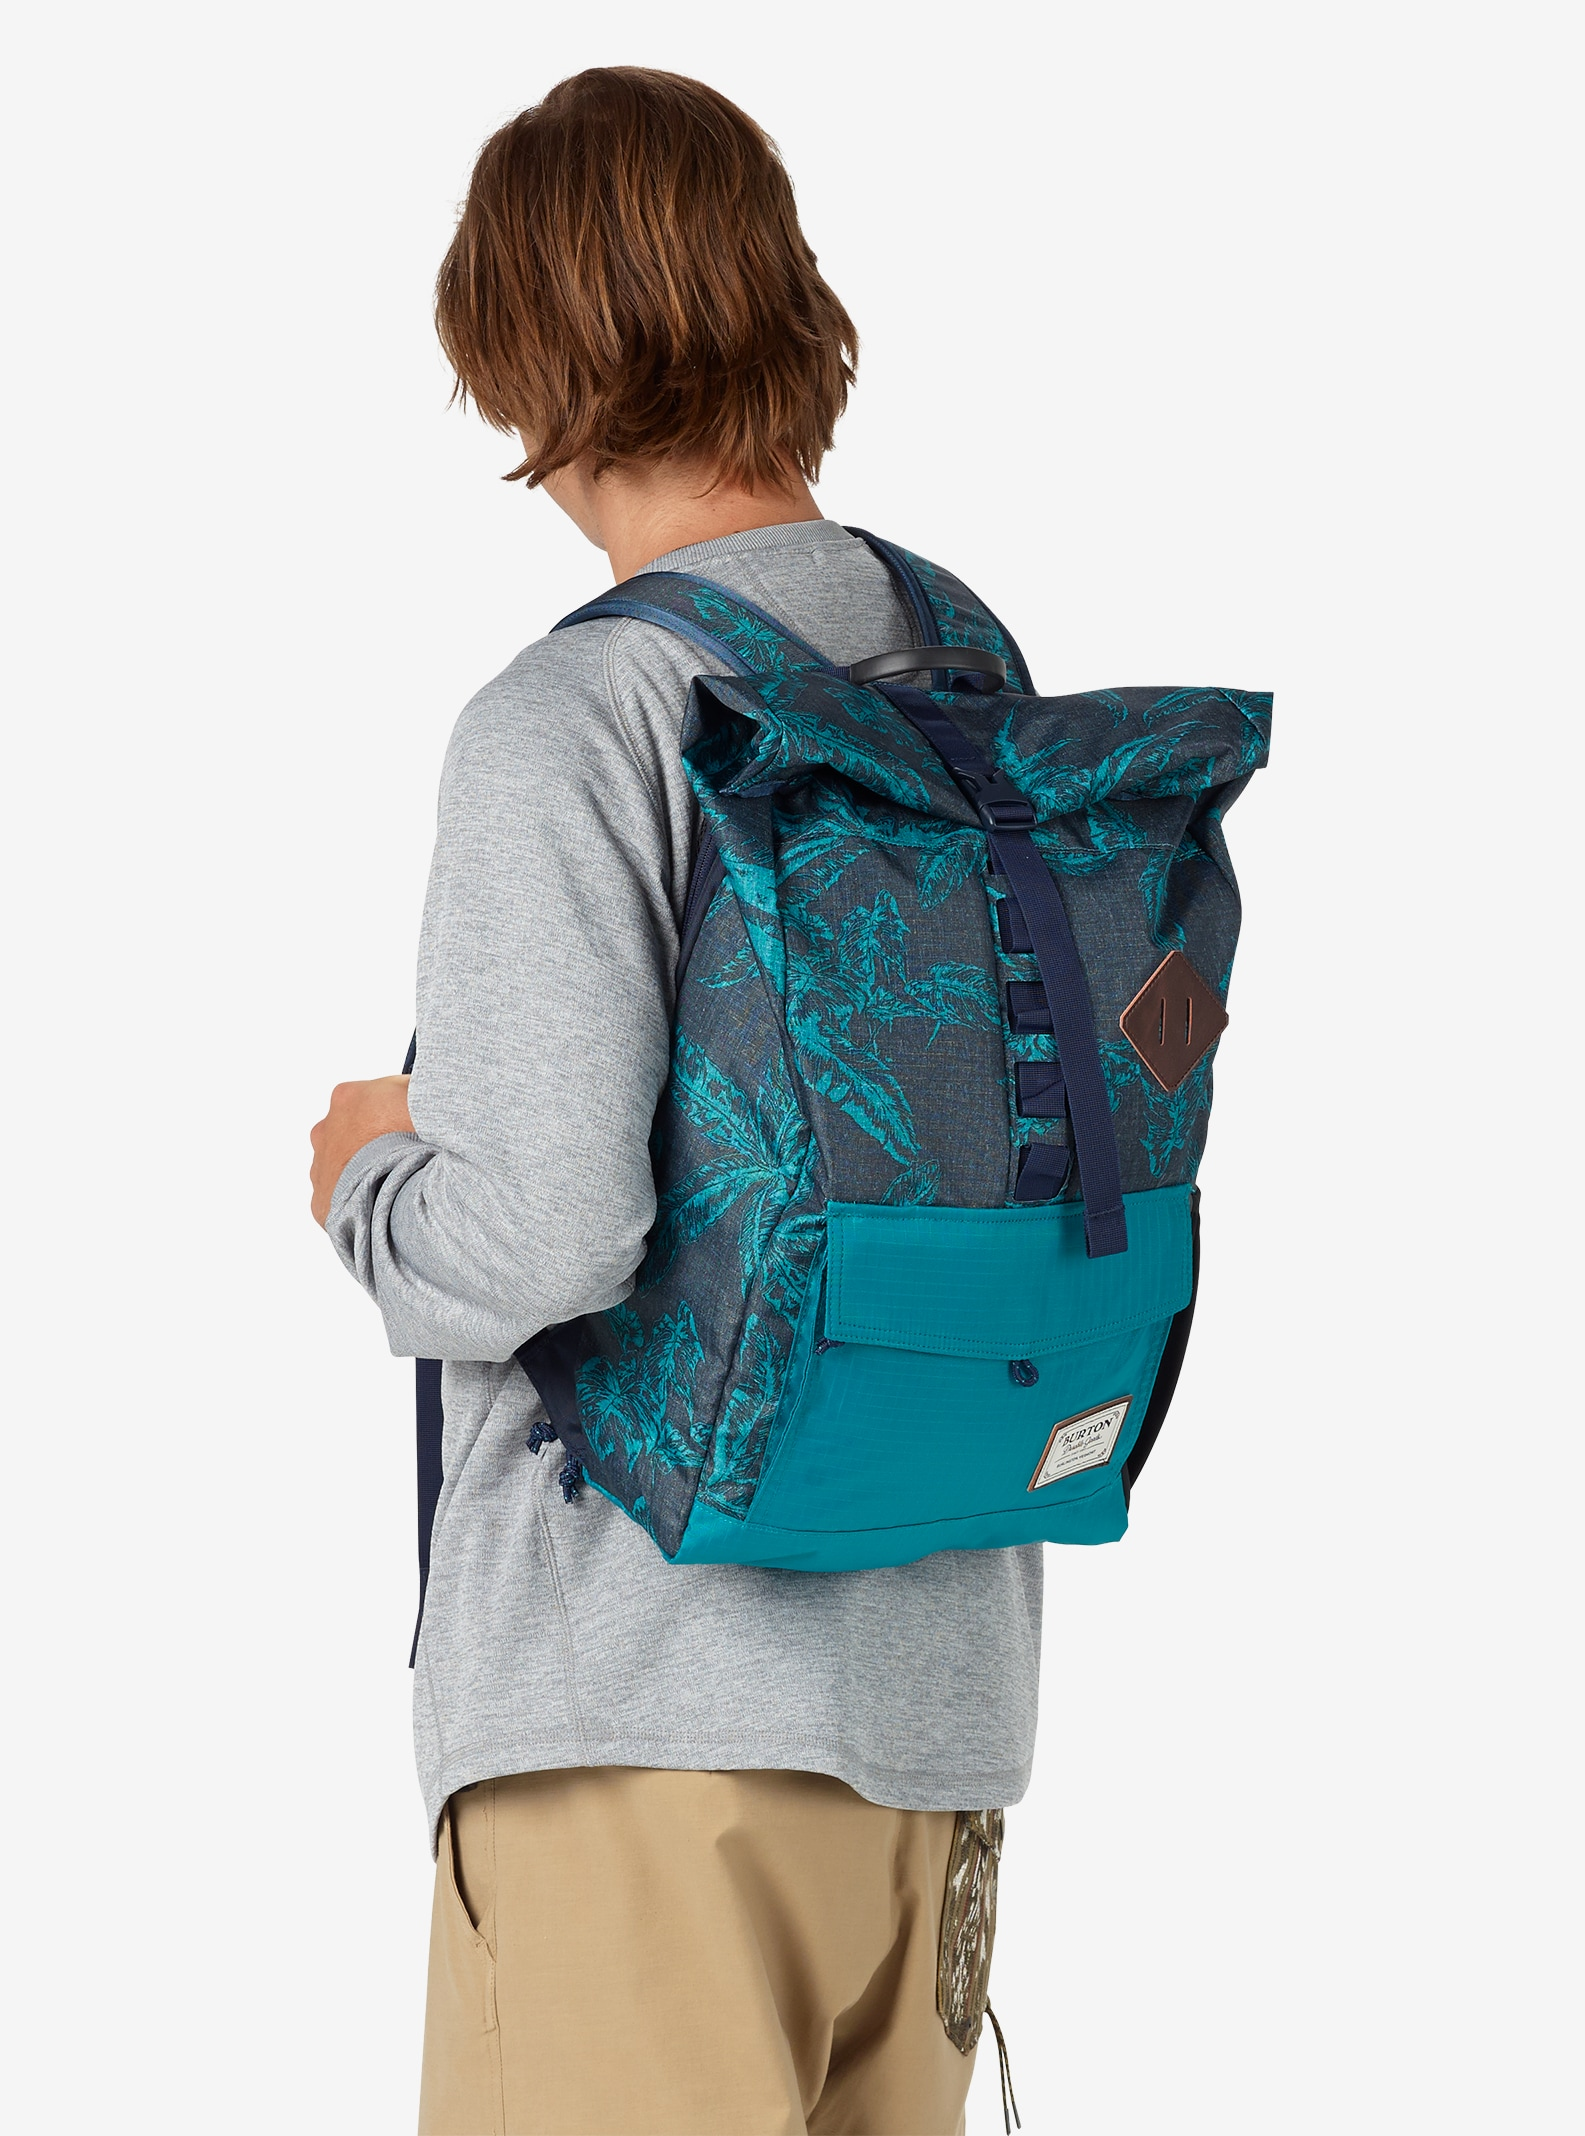 Burton Export Backpack shown in Tropical Print